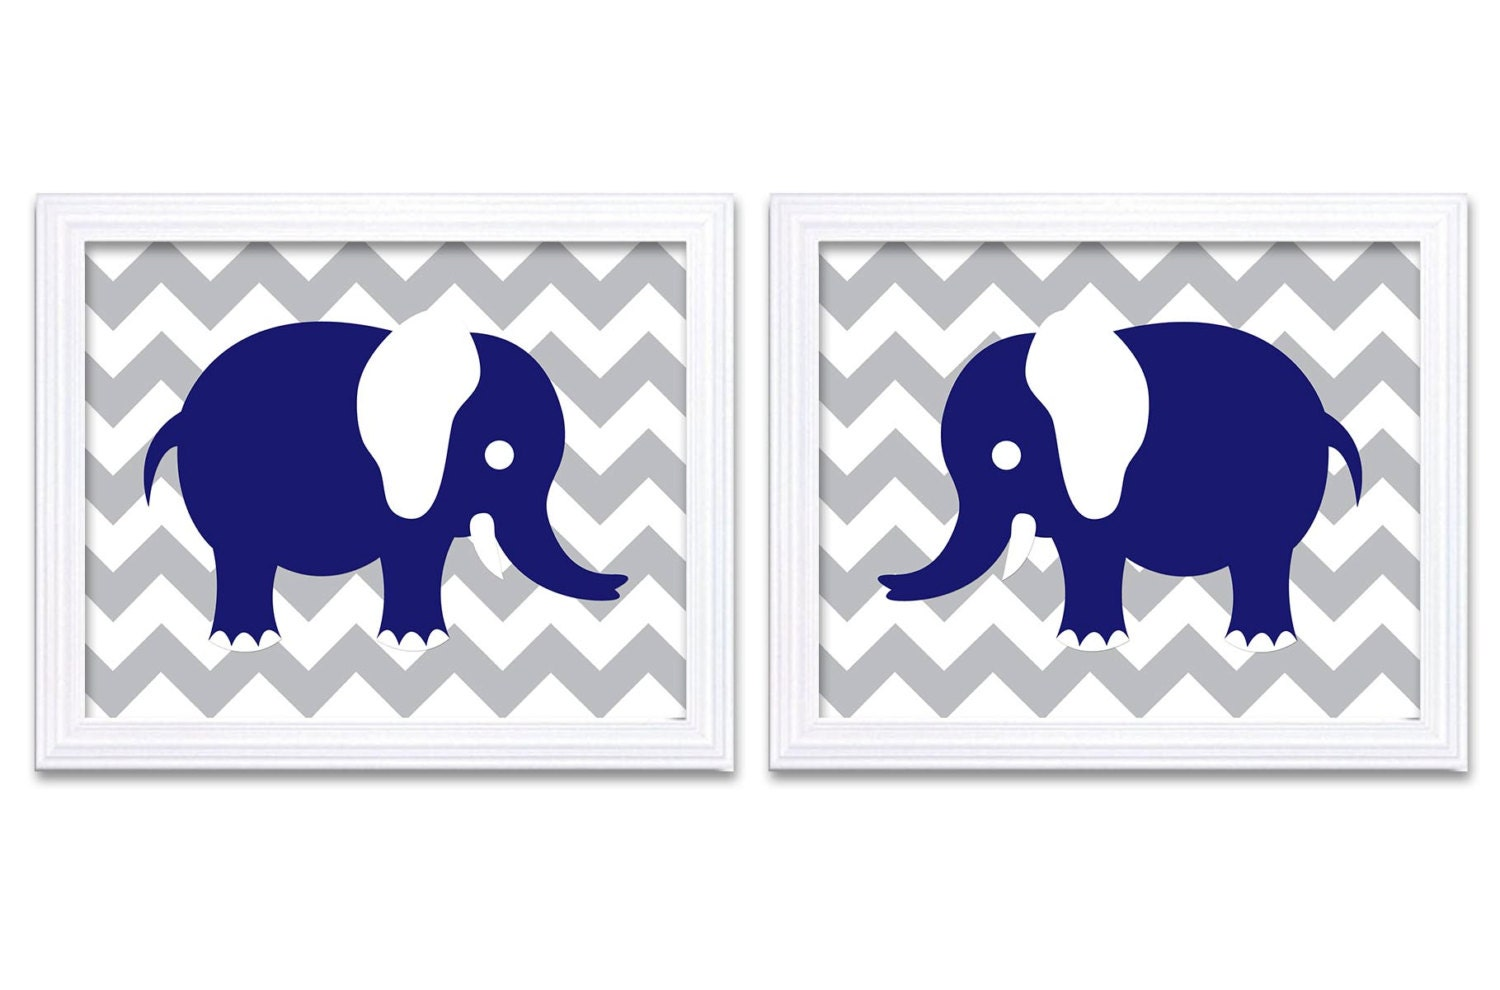 Elephant Nursery Art Nursery Print Set of 2 Elephants Navy Blue Grey Child Art Prints Boy Kids Room